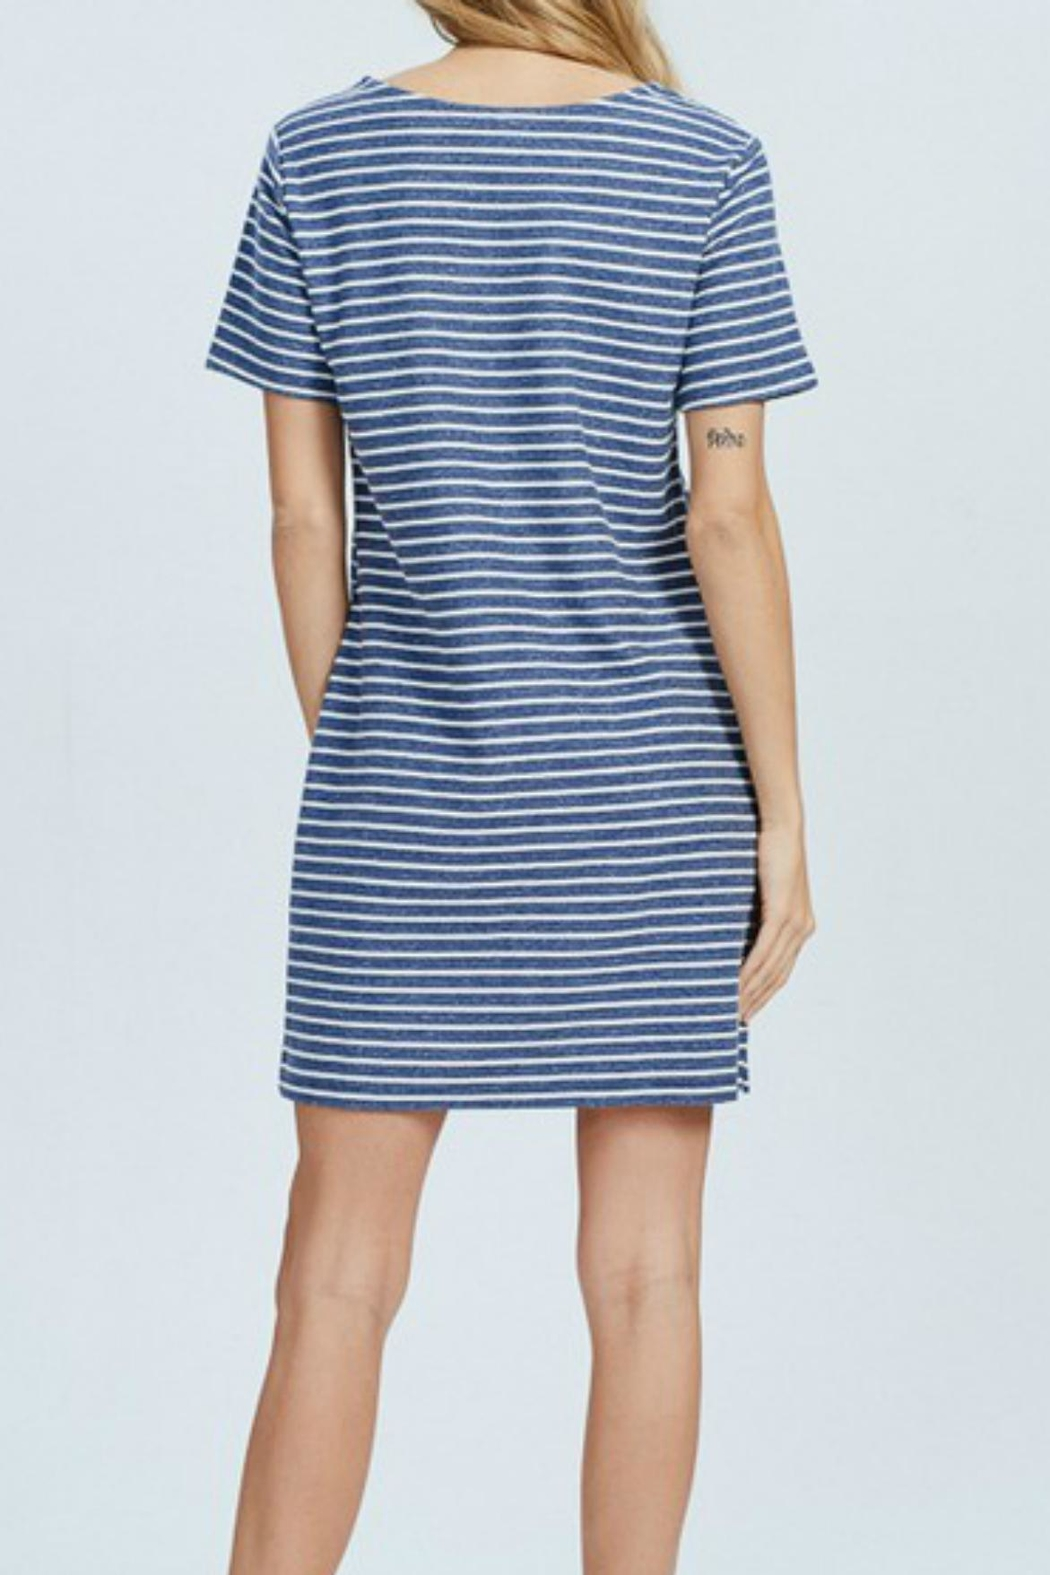 Wishlist Blue-Striped Mini Dress - Back Cropped Image